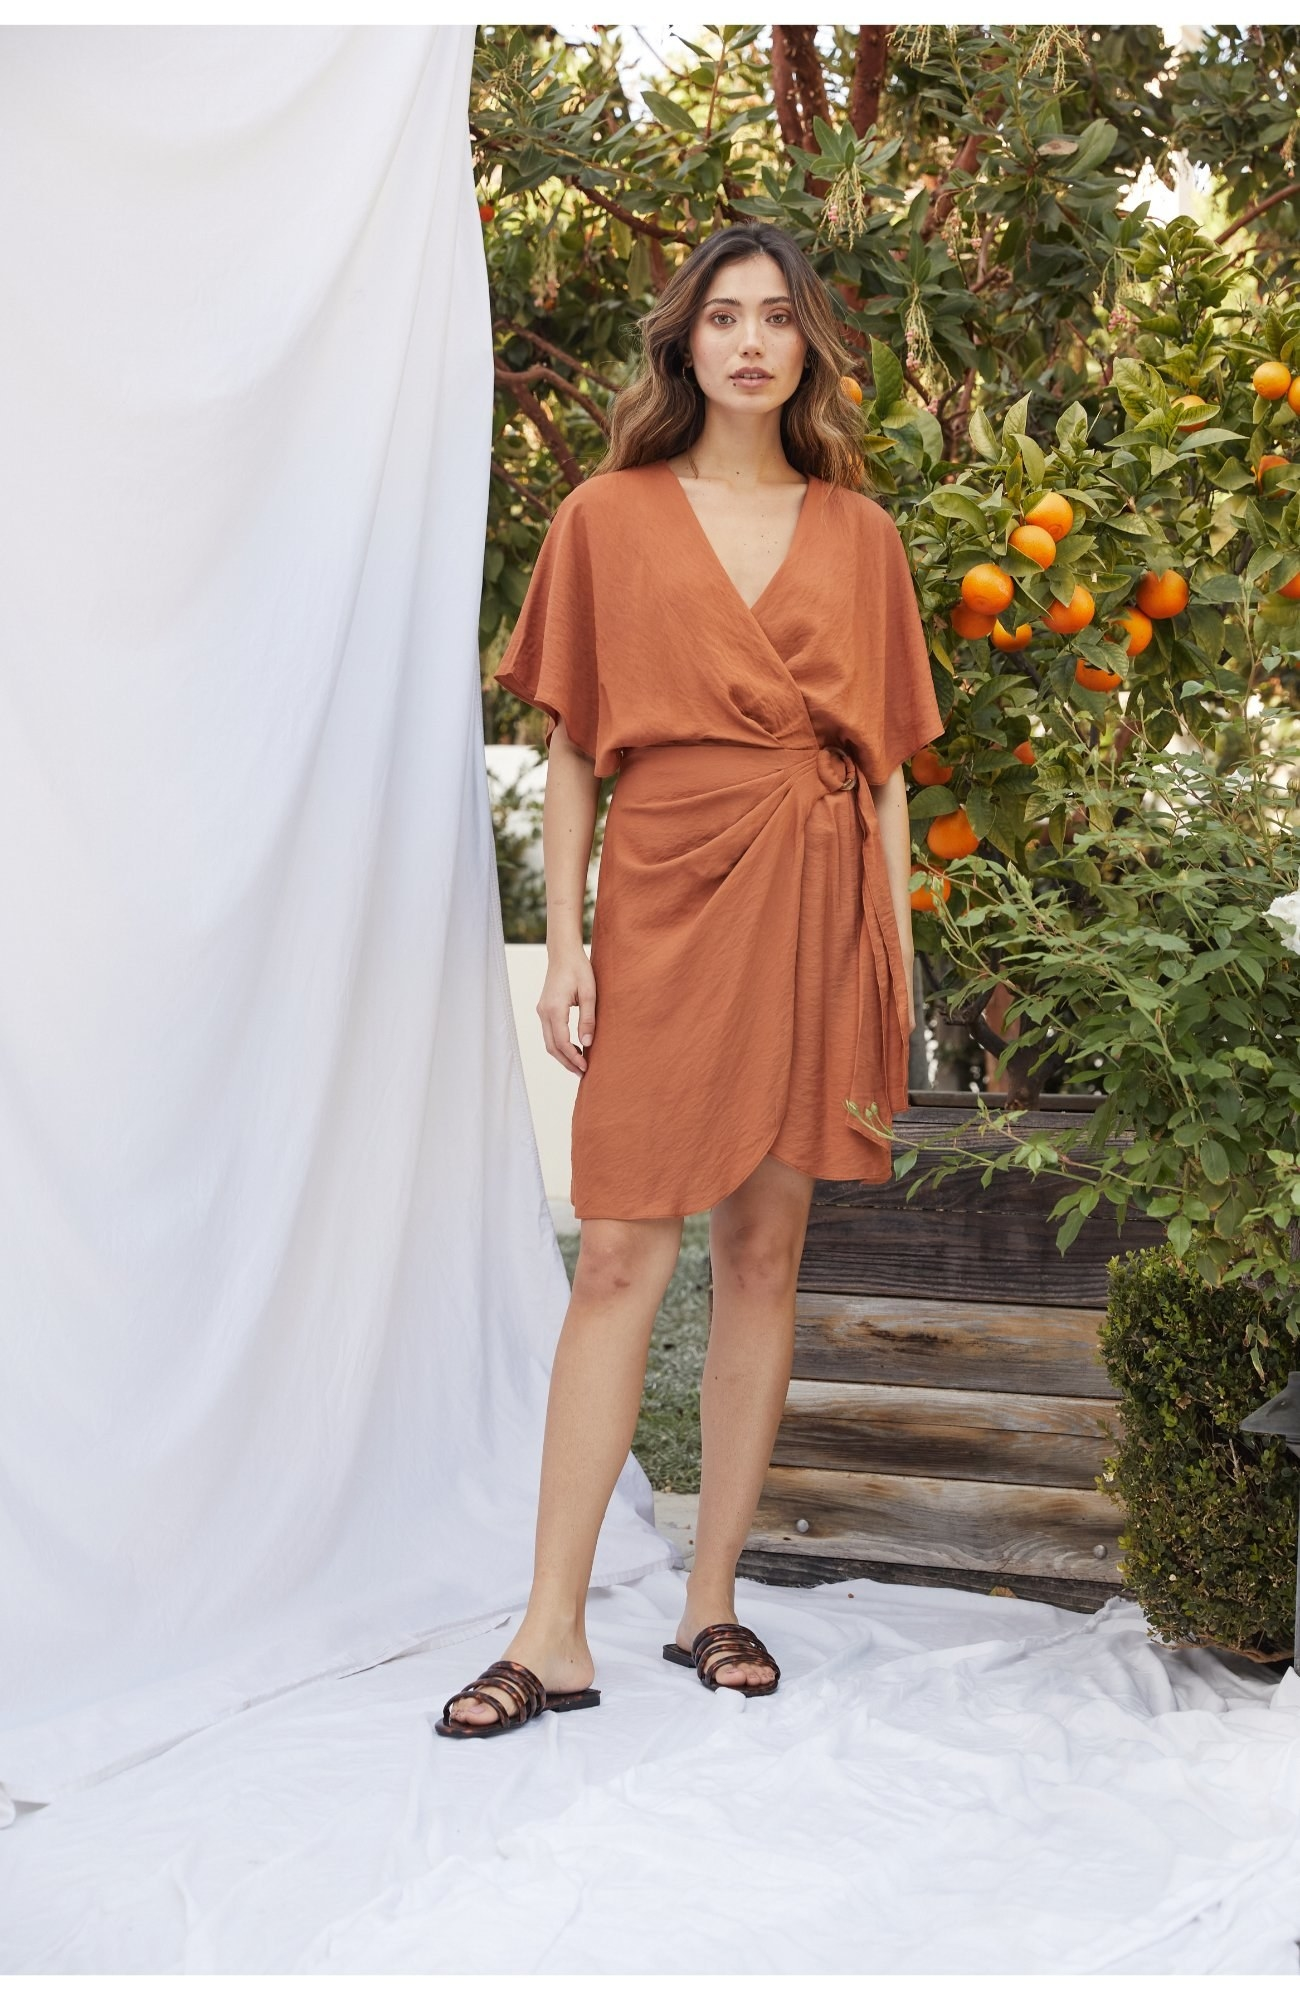 model wearing the brown rusty colored dress